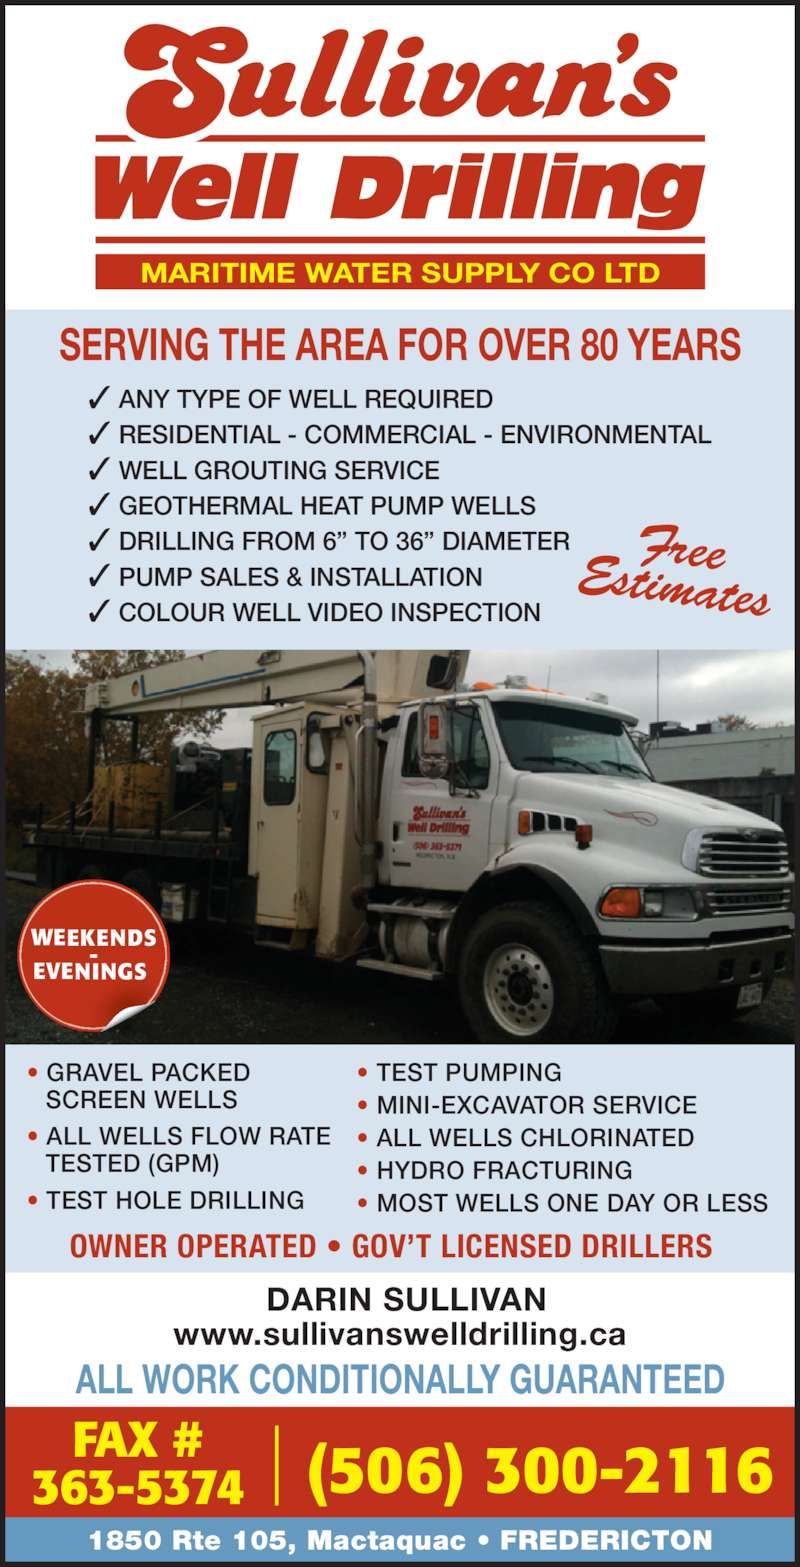 "Sullivan's Well Drilling Ltd (506-363-5371) - Display Ad - SERVING THE AREA FOR OVER 80 YEARS ANY TYPE OF WELL REQUIRED RESIDENTIAL - COMMERCIAL - ENVIRONMENTAL WELL GROUTING SERVICE GEOTHERMAL HEAT PUMP WELLS DRILLING FROM 6"" TO 36"" DIAMETER PUMP SALES & INSTALLATION COLOUR WELL VIDEO INSPECTION MARITIME WATER SUPPLY CO LTD ALL WORK CONDITIONALLY GUARANTEED 1850 Rte 105, Mactaquac • FREDERICTON OWNER OPERATED • GOV'T LICENSED DRILLERS DARIN SULLIVAN www.sullivanswelldrilling.ca (506) 300-2116FAX #363-5374 FreeEstimates • GRAVEL PACKED  SCREEN WELLS • ALL WELLS FLOW RATE  TESTED (GPM) • TEST HOLE DRILLING • TEST PUMPING • MINI-EXCAVATOR SERVICE • ALL WELLS CHLORINATED • HYDRO FRACTURING • MOST WELLS ONE DAY OR LESS WEEKENDS EVENINGS"